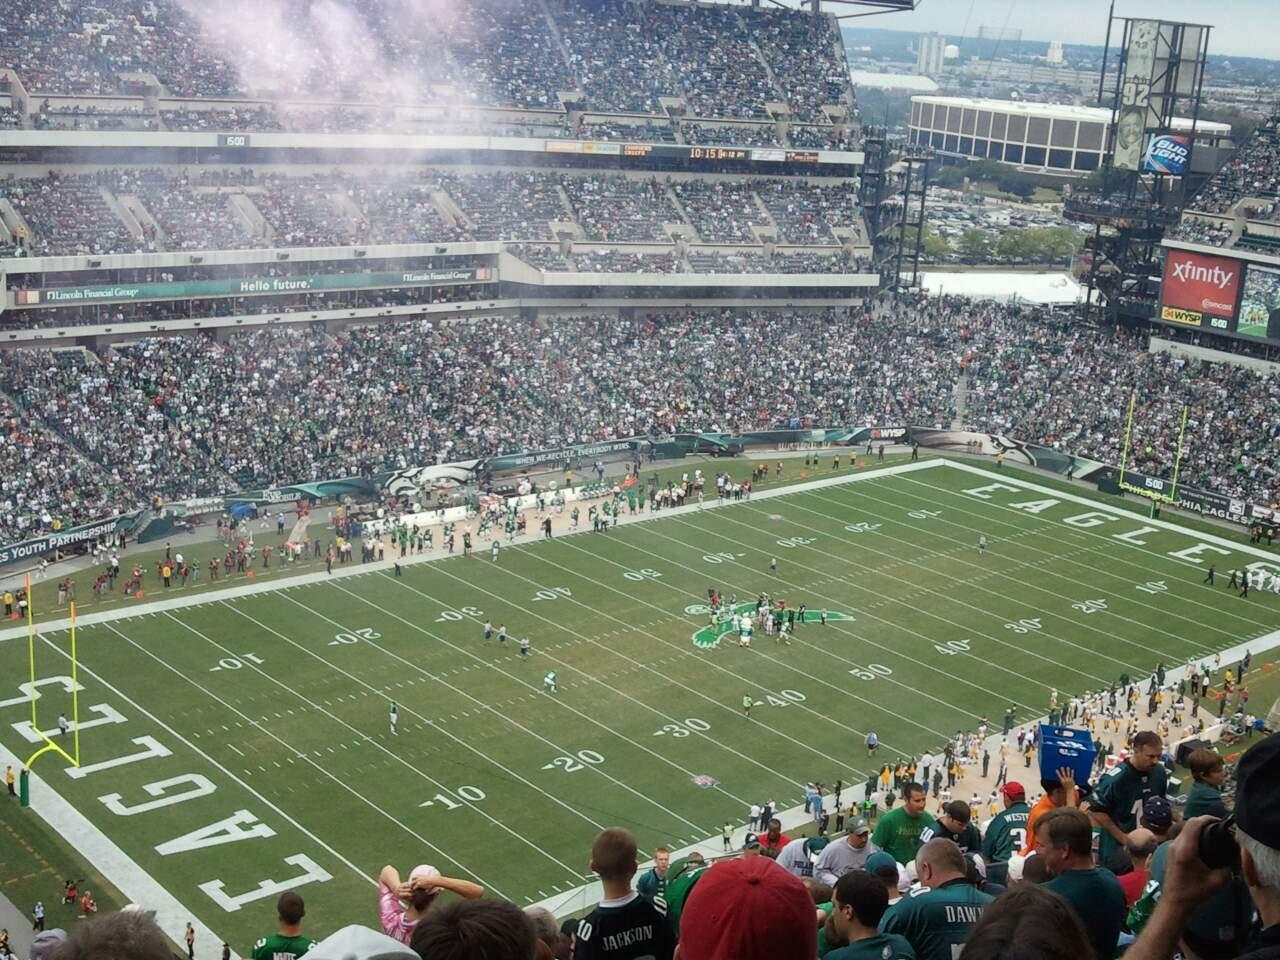 Lincoln Financial Field Section 219 Row 21 Seat 18